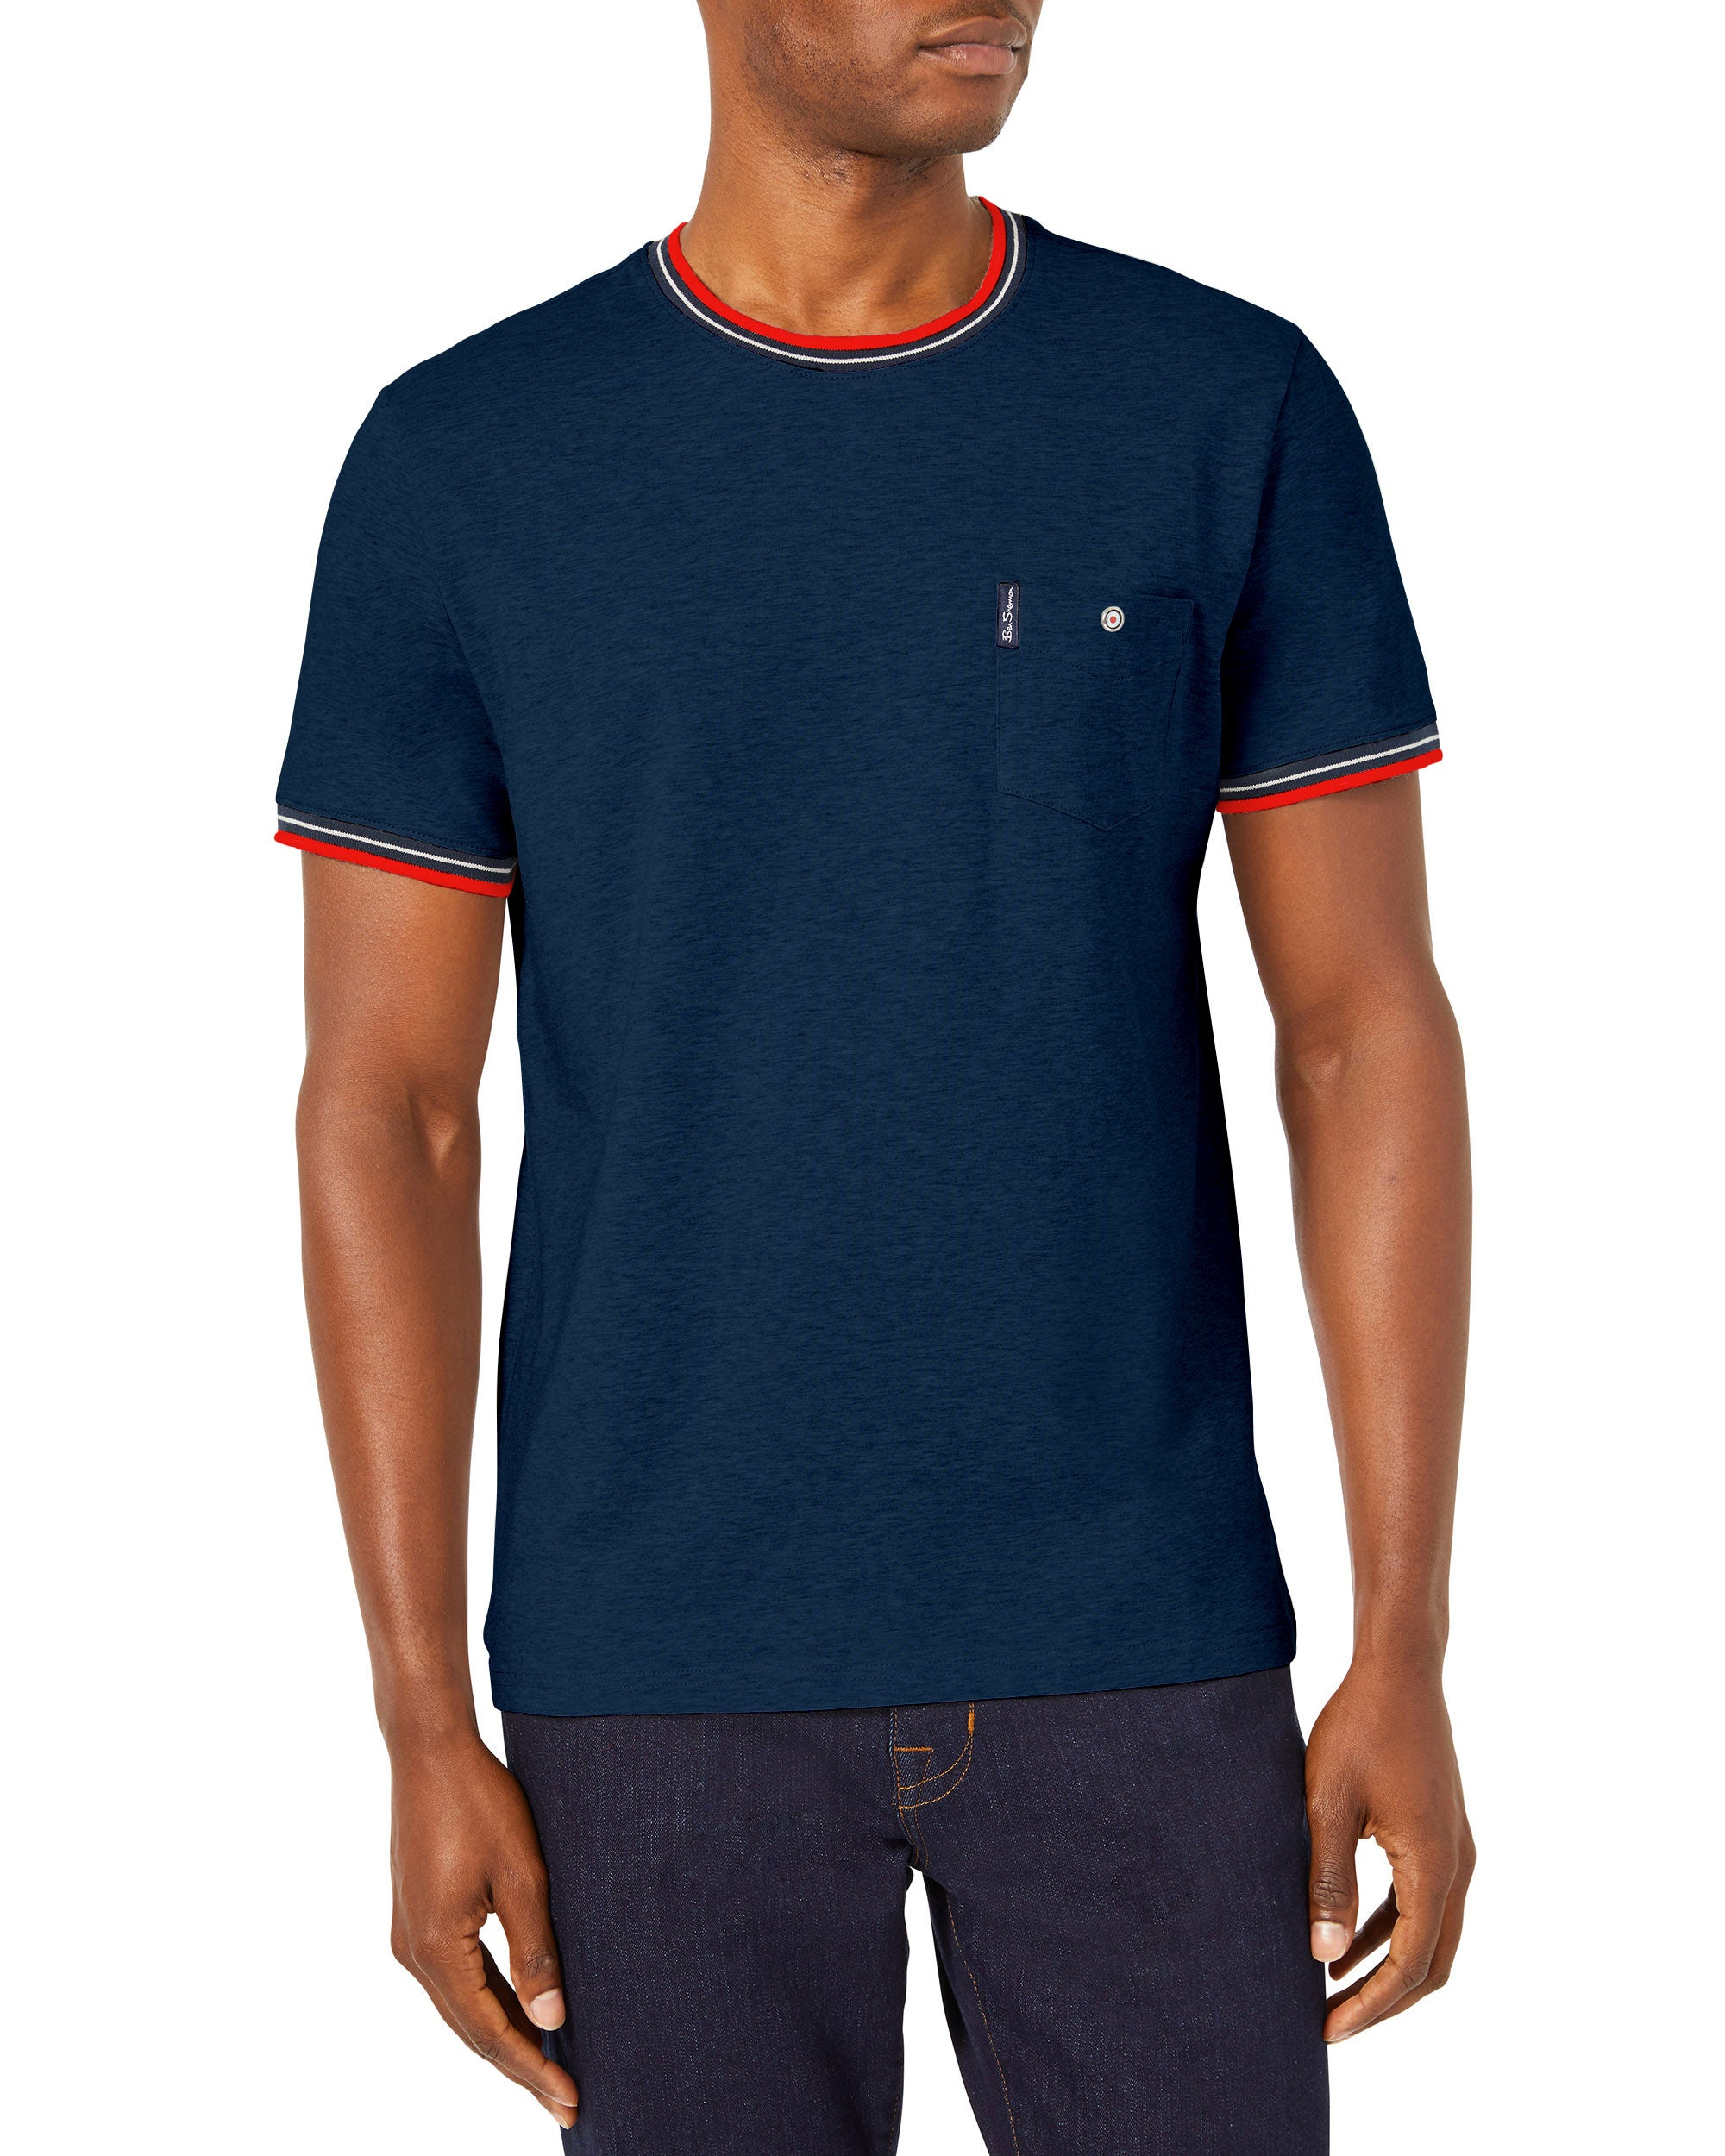 Supima Cotton Pocket Crew T-Shirt - Navy